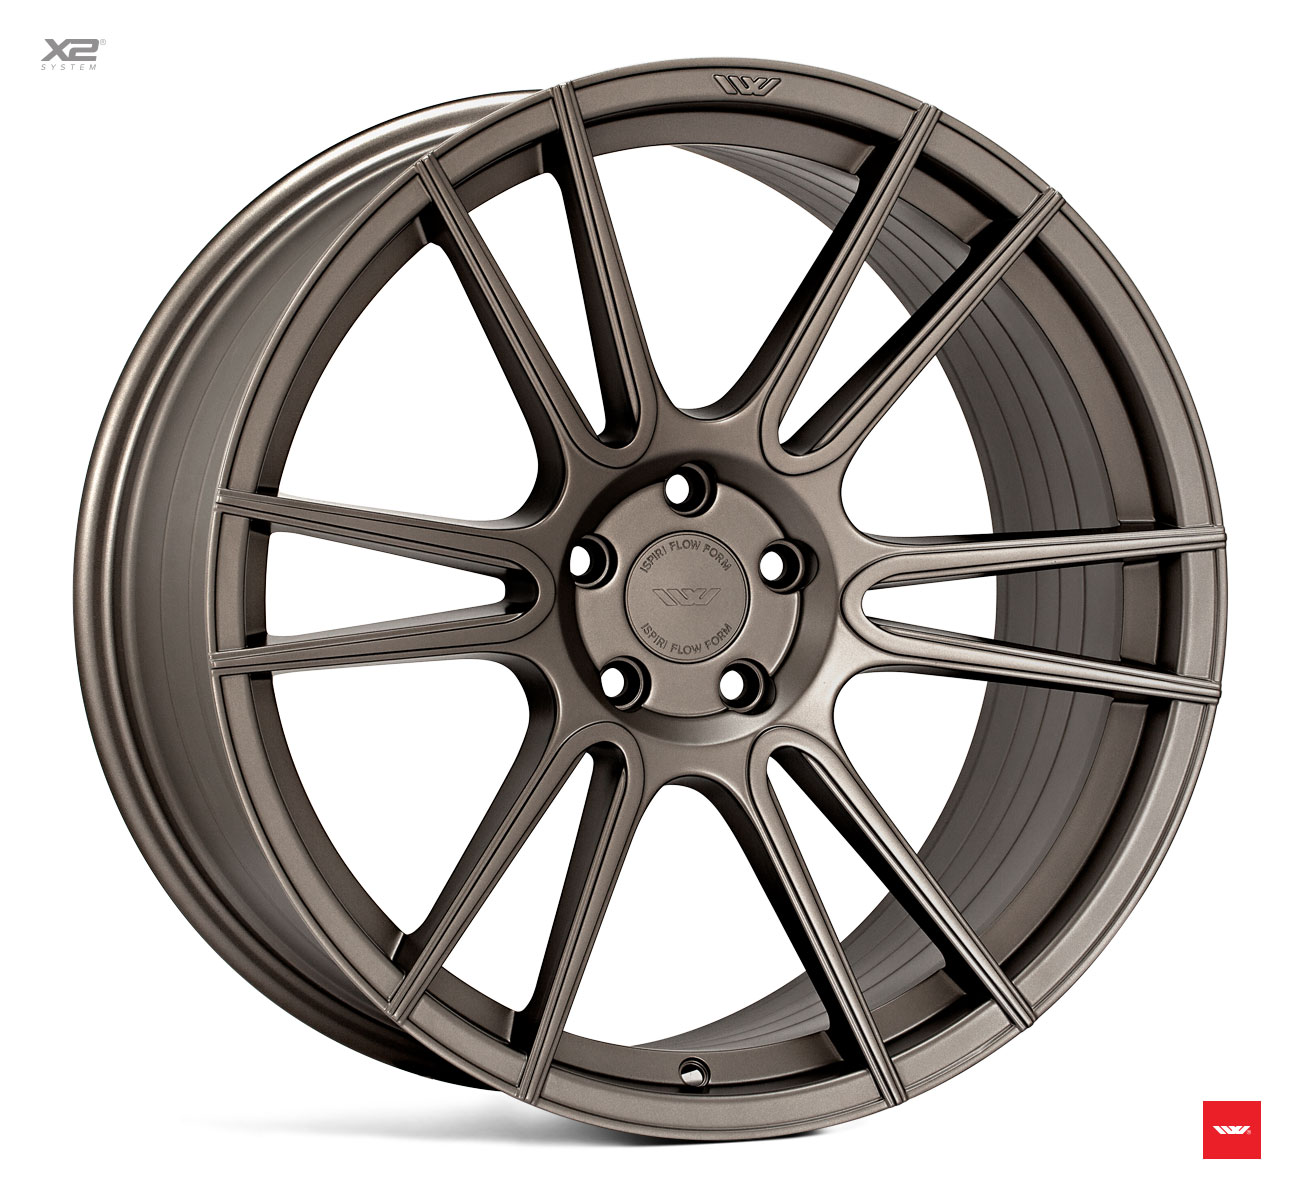 "NEW 20"" ISPIRI FFR7 TWIN CURVED 6 SPOKE ALLOY WHEELS IN MATT CARBON BRONZE, WIDER 10"" REAR"